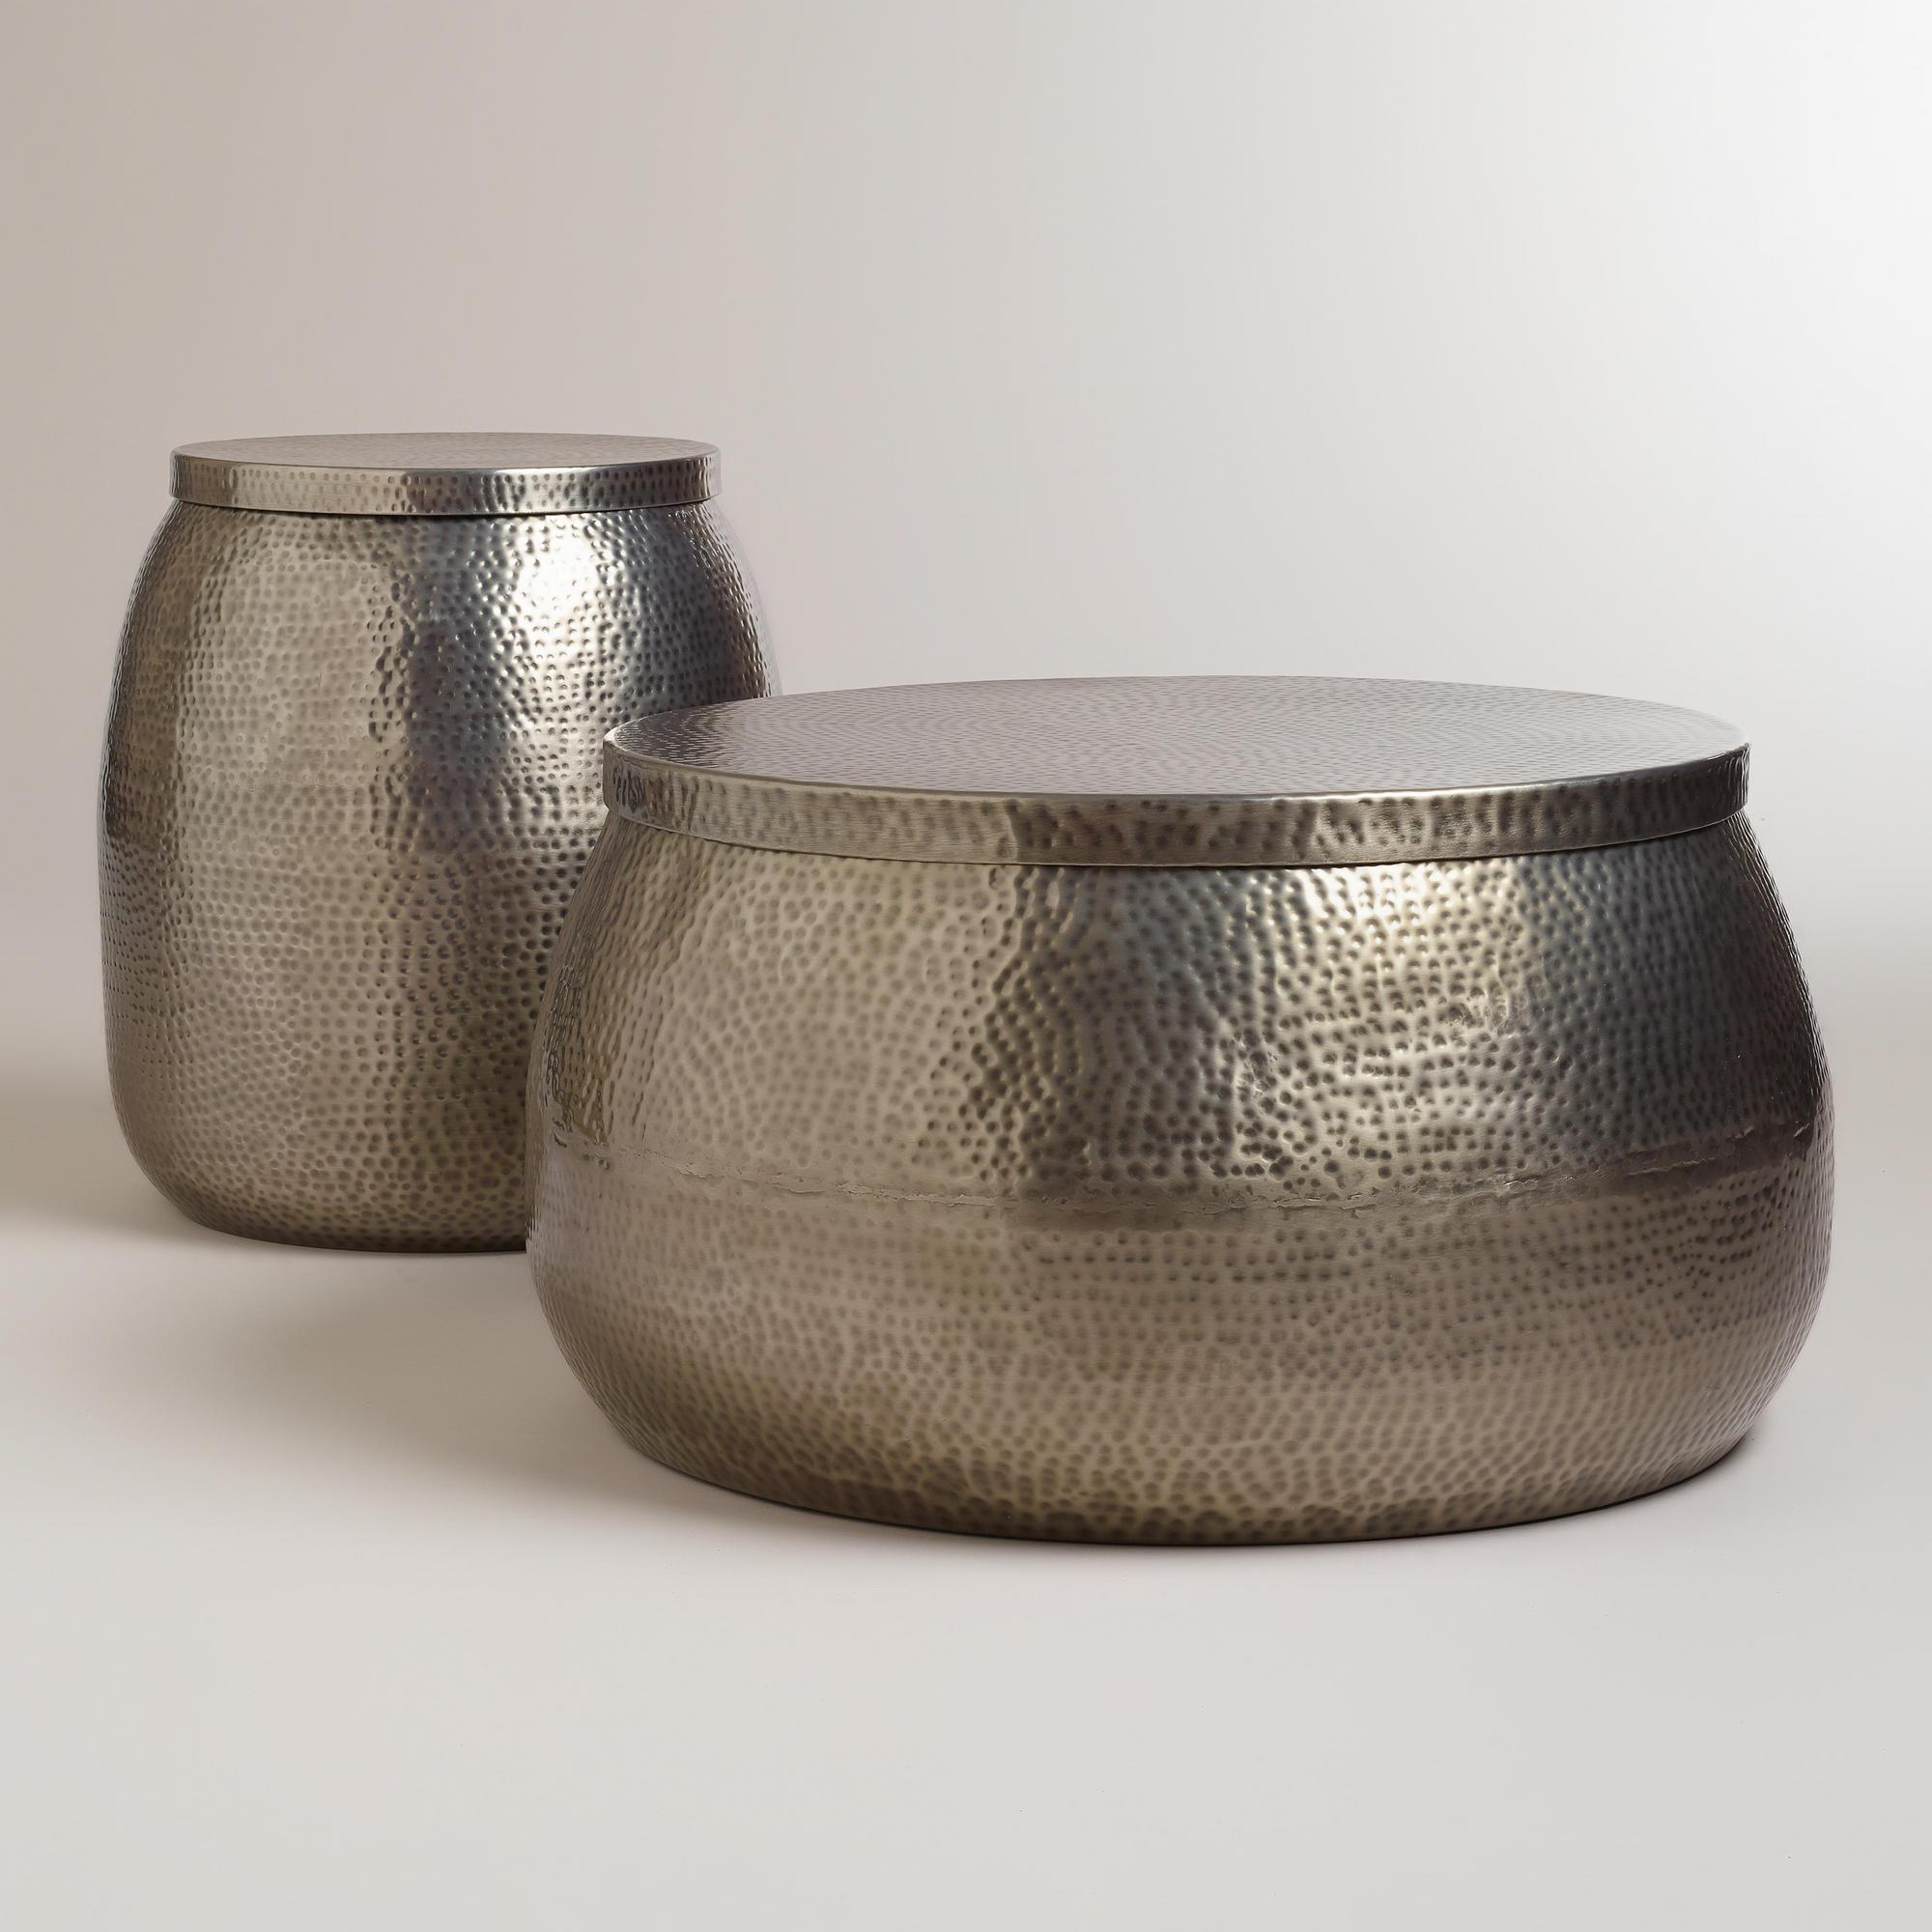 Hammered Metal Drum Table Bookmark your favorite images with Wookmark. Sign up Log in Learn more